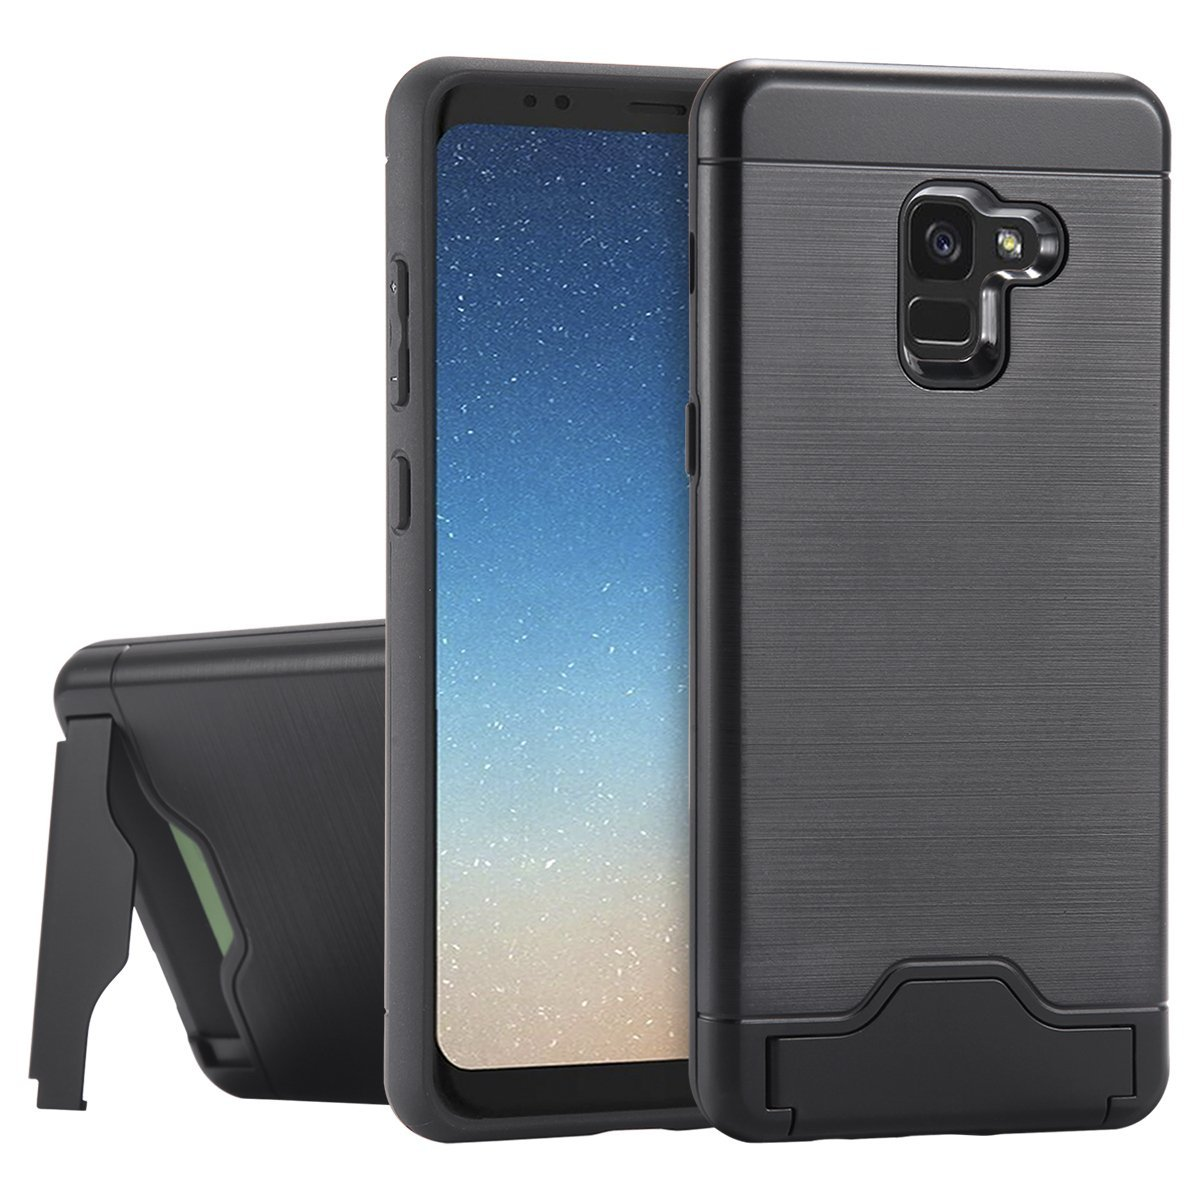 timeless design 5353b d4fed Best cases for Galaxy A8 and Galaxy A8+ (2018) - SamMobile